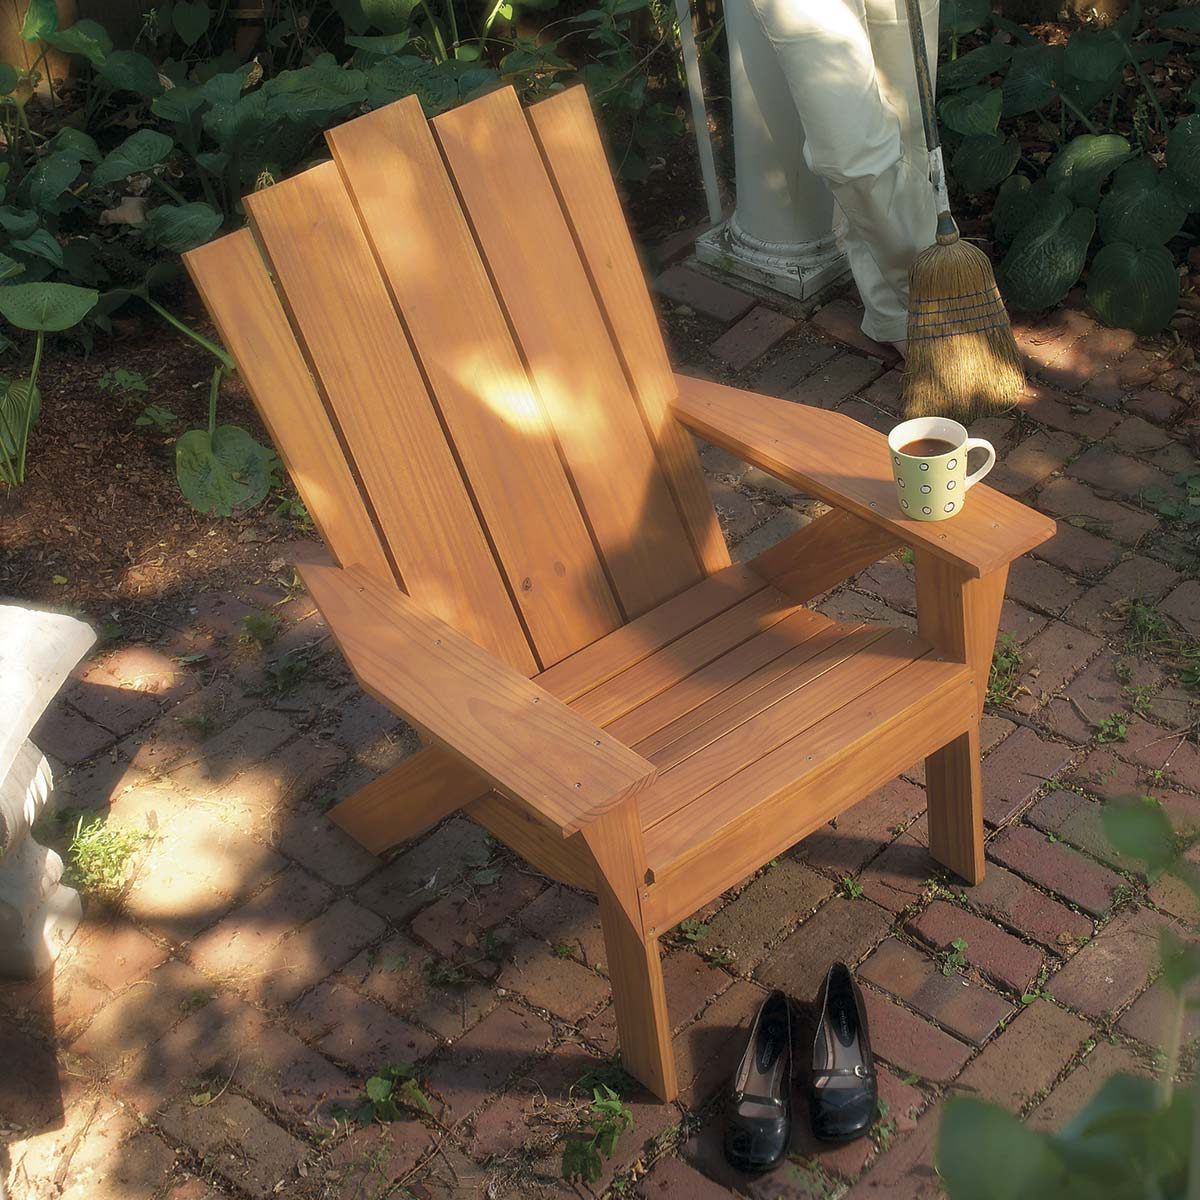 outdoor table and chairs wood deep seat patio without cushions 15 awesome plans for diy furniture the family handyman how to make an adirondack chair love